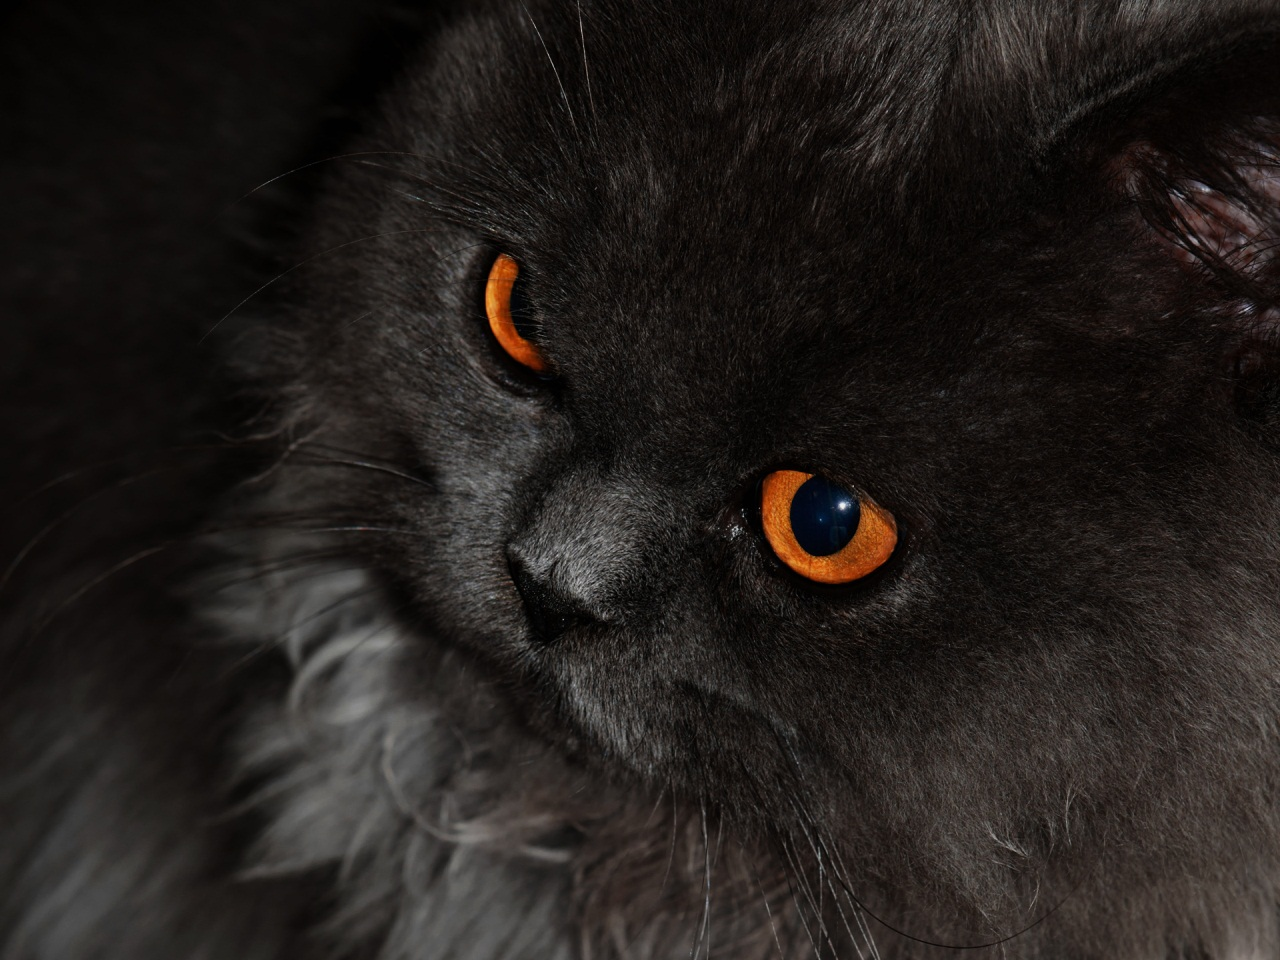 Black Cat Eyes Wallpaper: Cats Beauty HD Wallpaper